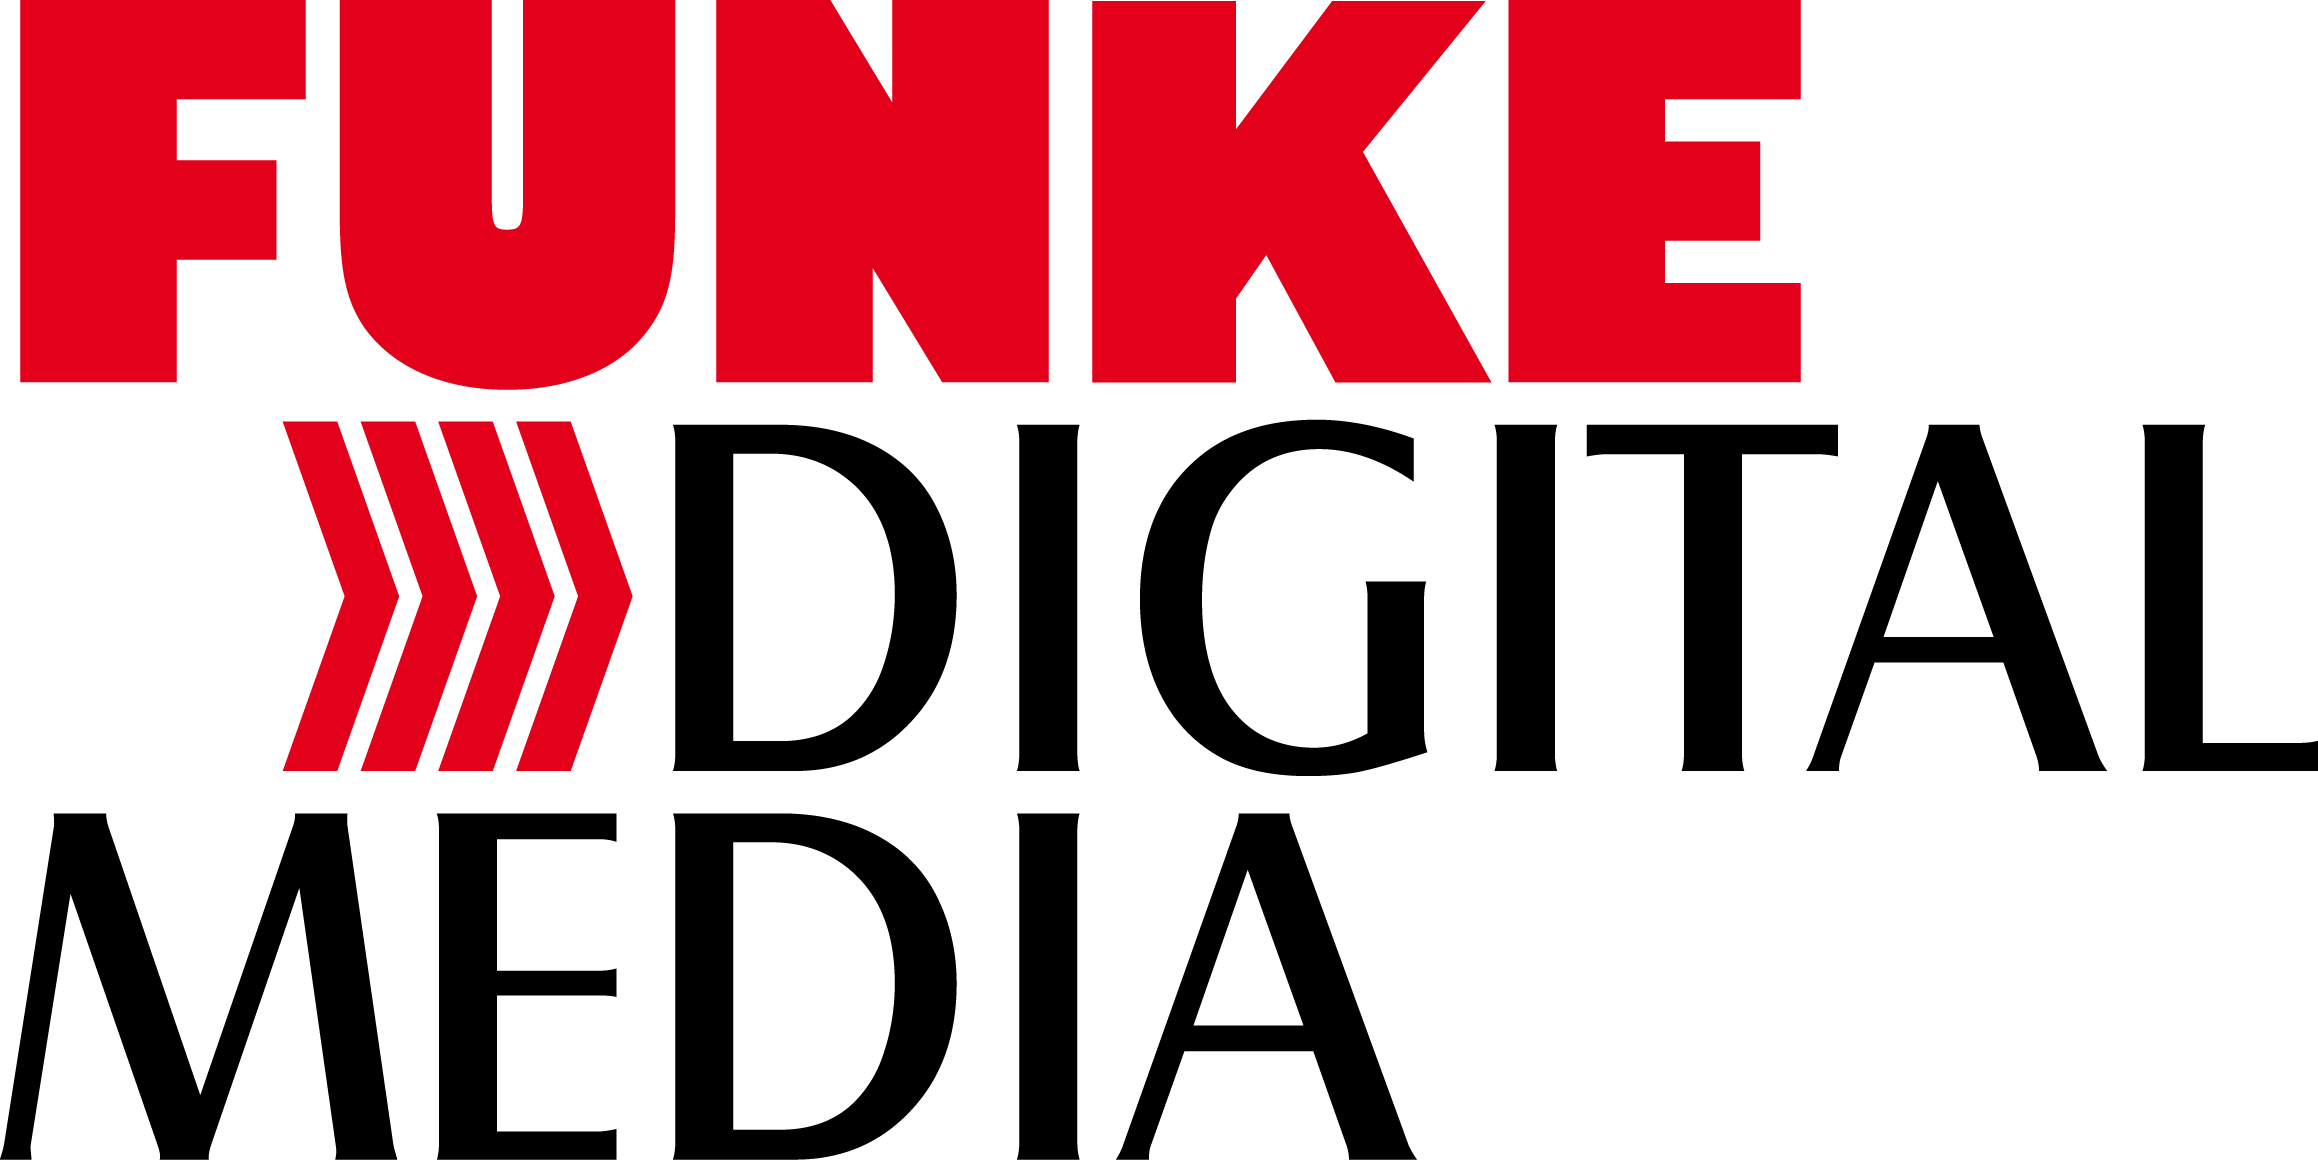 FUNKE DIGITAL MEDIA